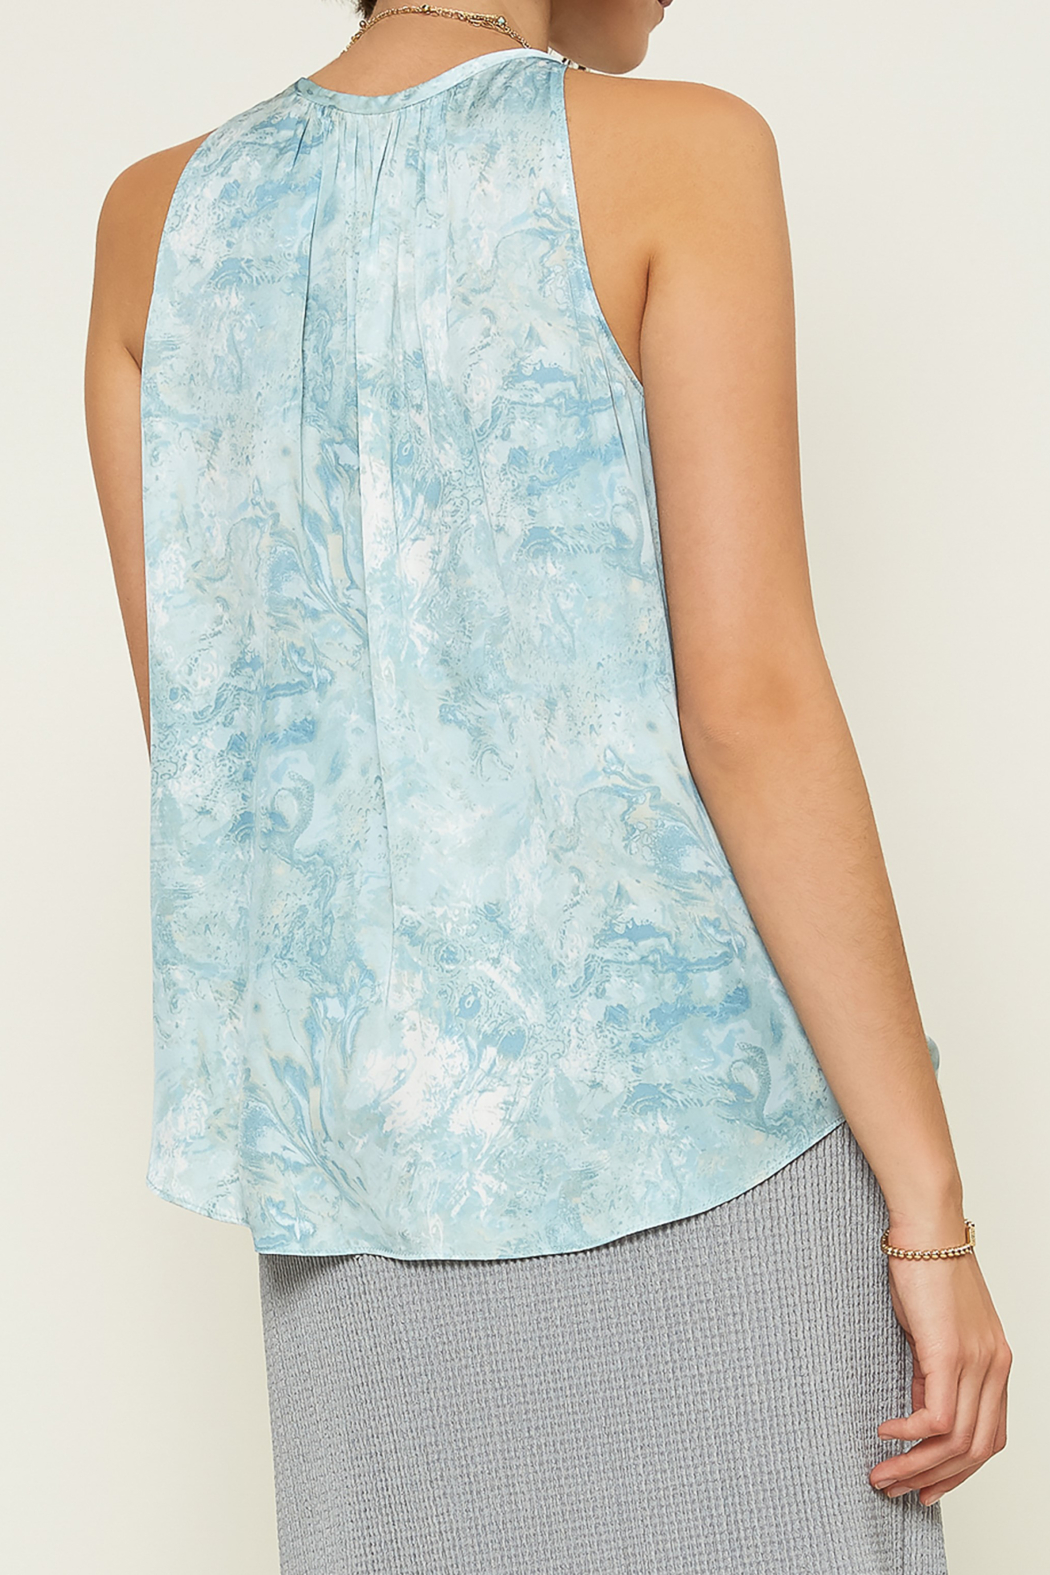 Current Air Sea Wave Print Keyhole Halter Top - Front Full Image